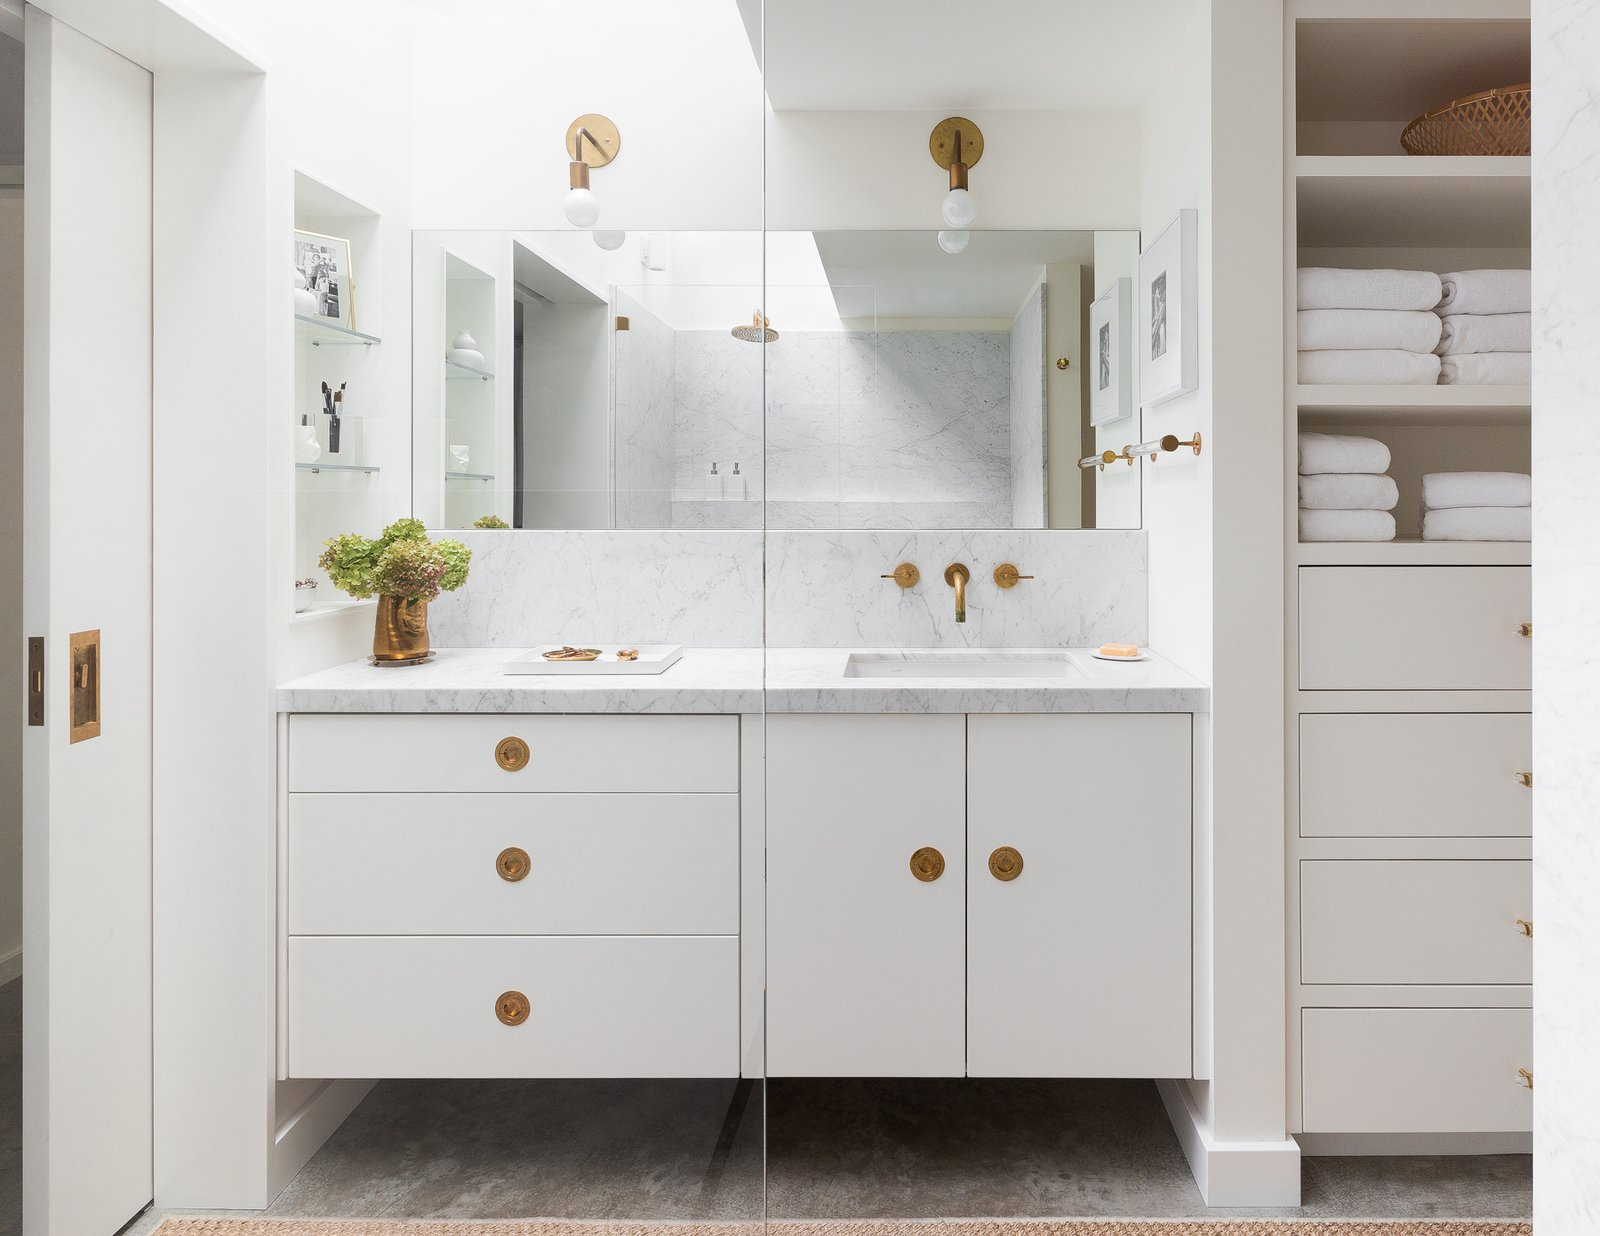 A Carrara Marble Counter And Backsplash, Concrete Floors, A Frameless  Mirror, And White